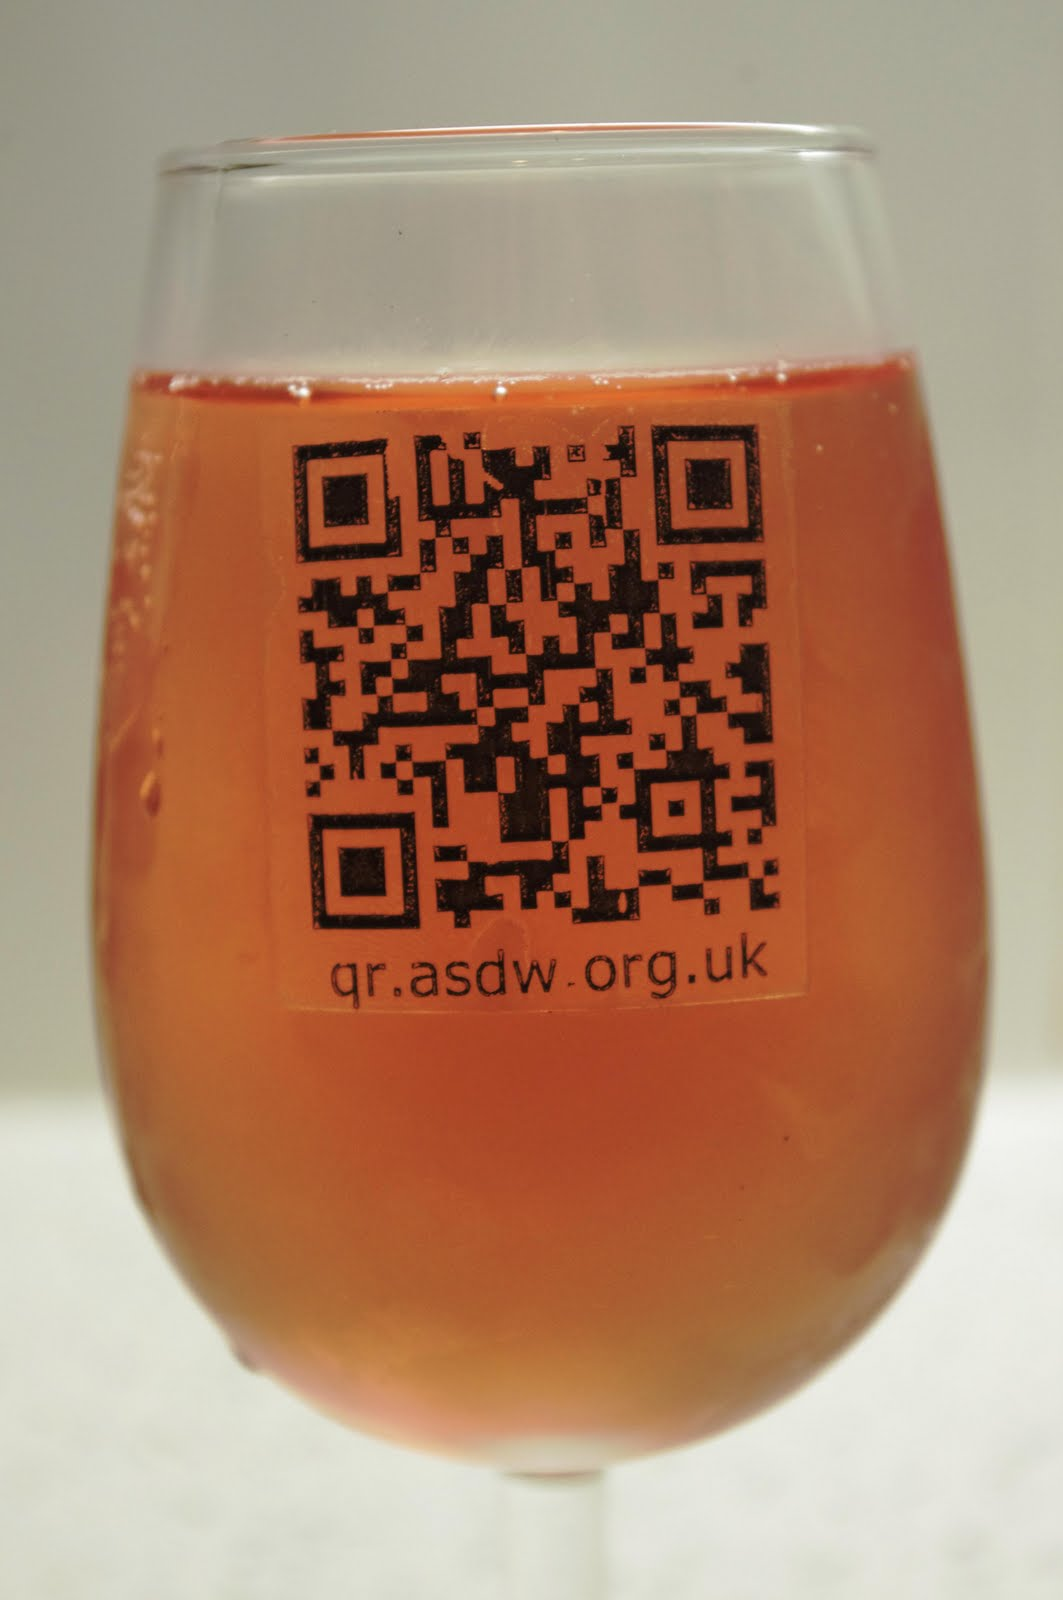 Use QR Codes to Check-In with Foursquare or Facebook